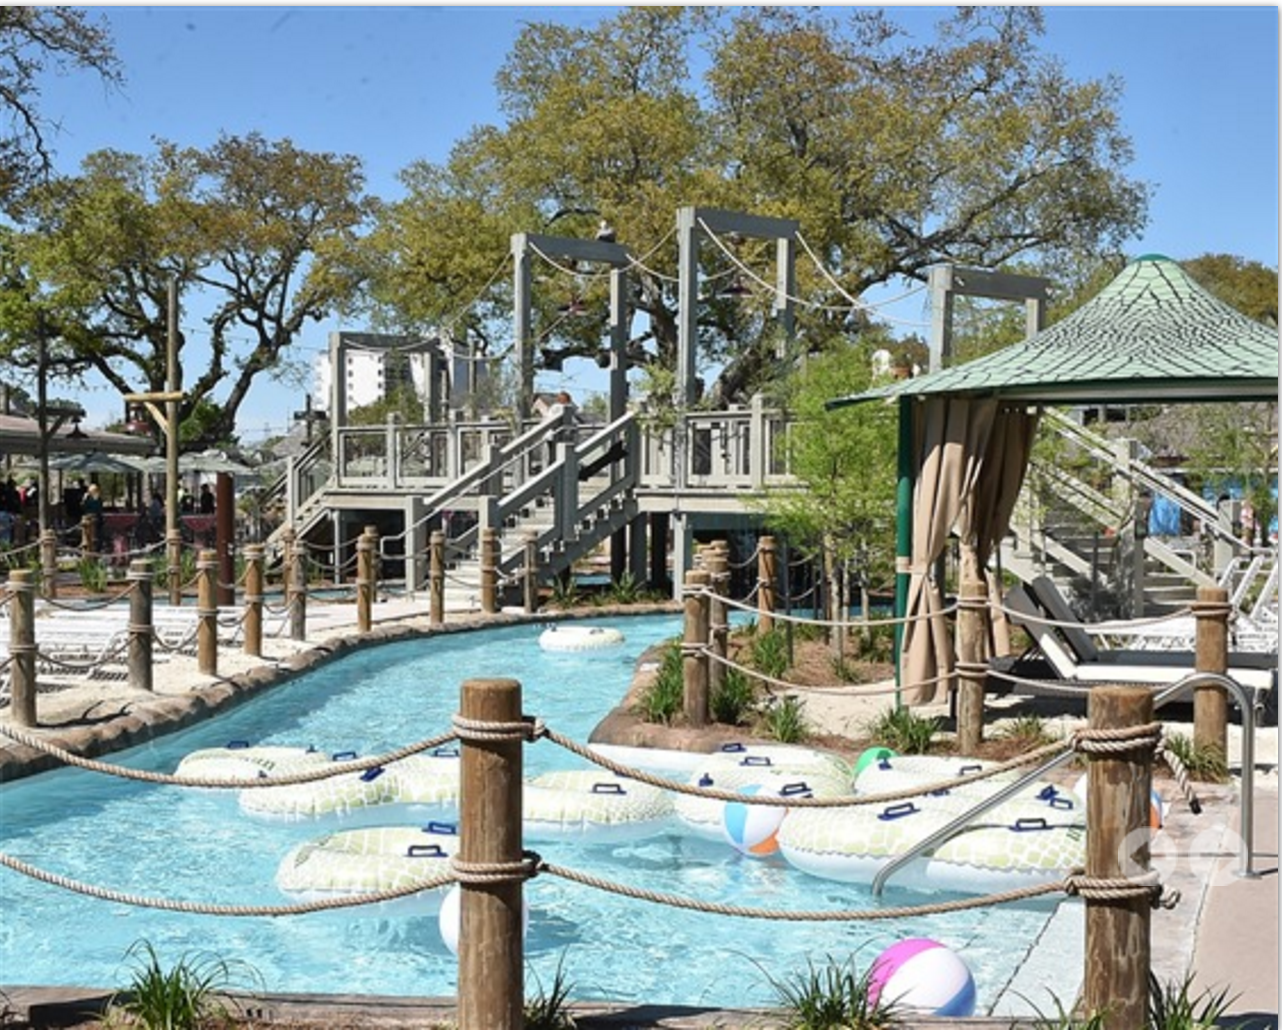 9 Best Waterparks In New Orleans